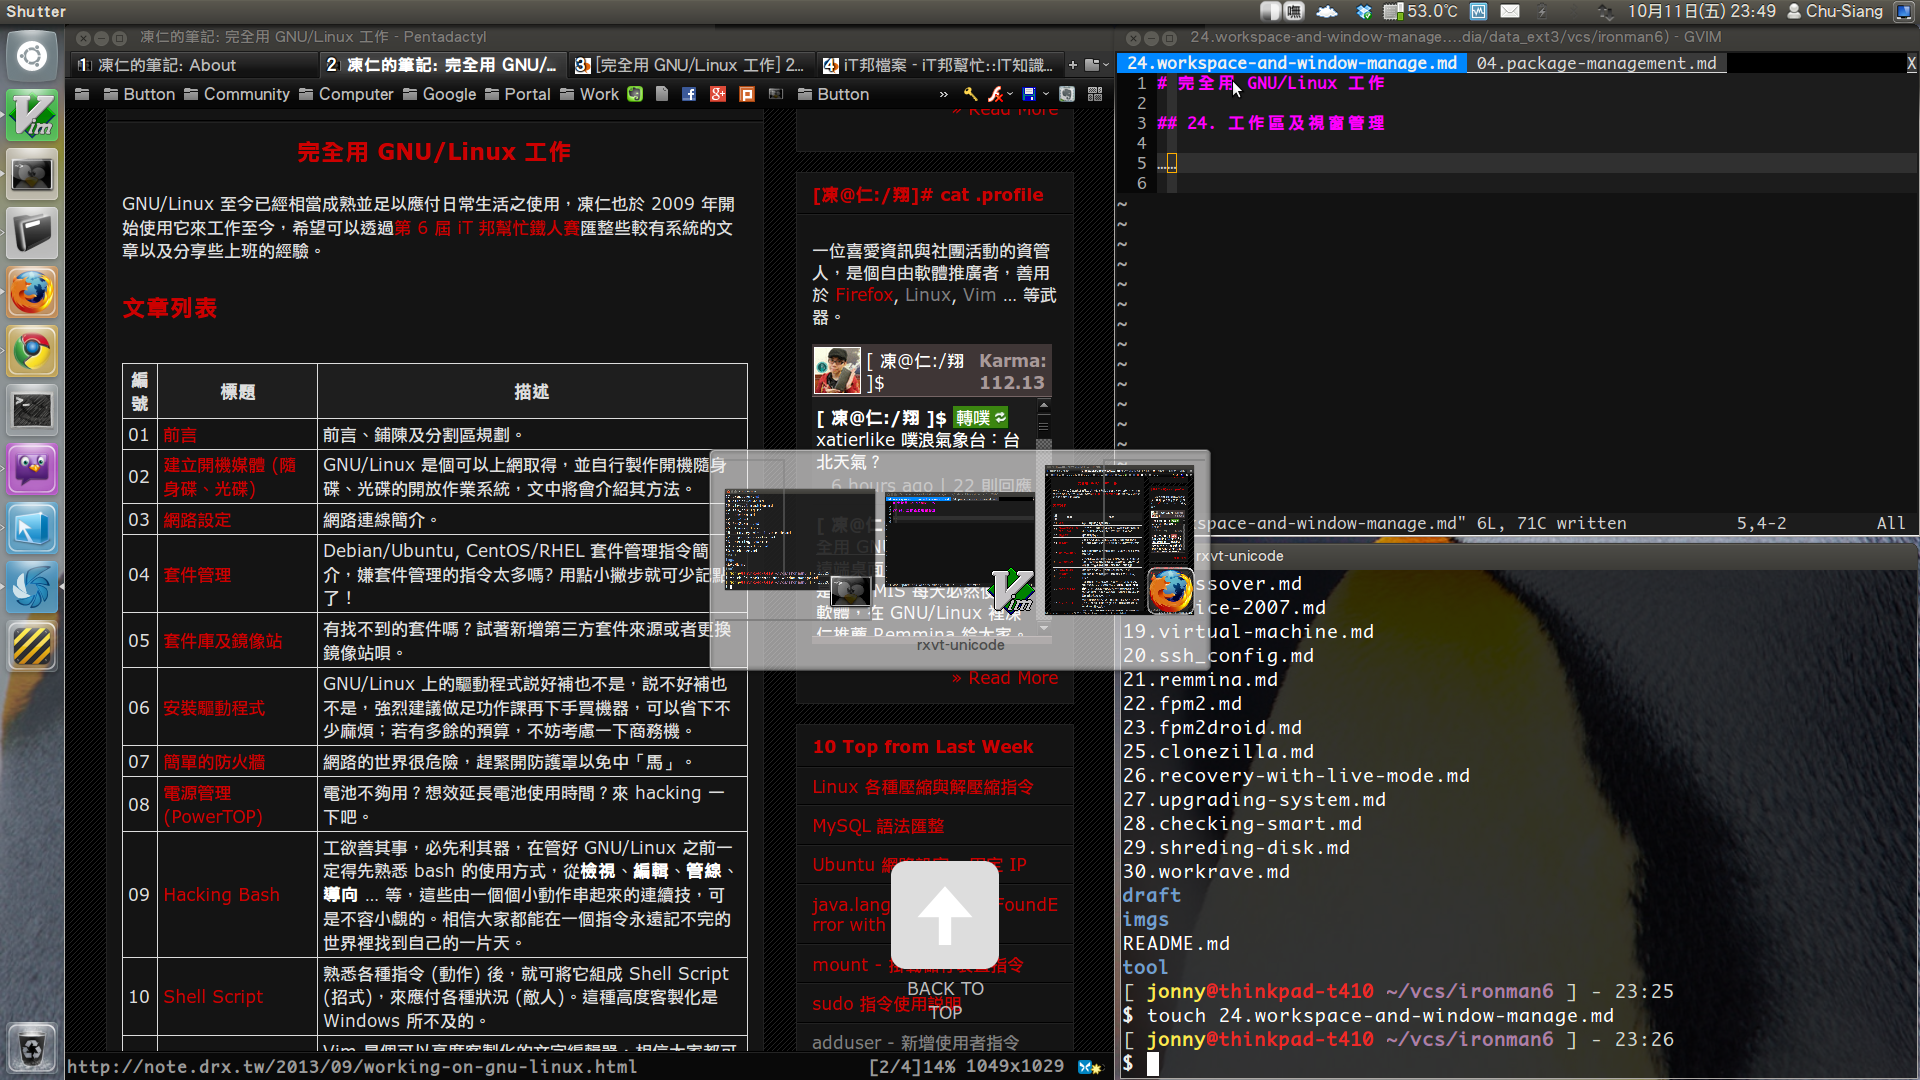 2013-10-11-workspace-and-window-manage-02.png